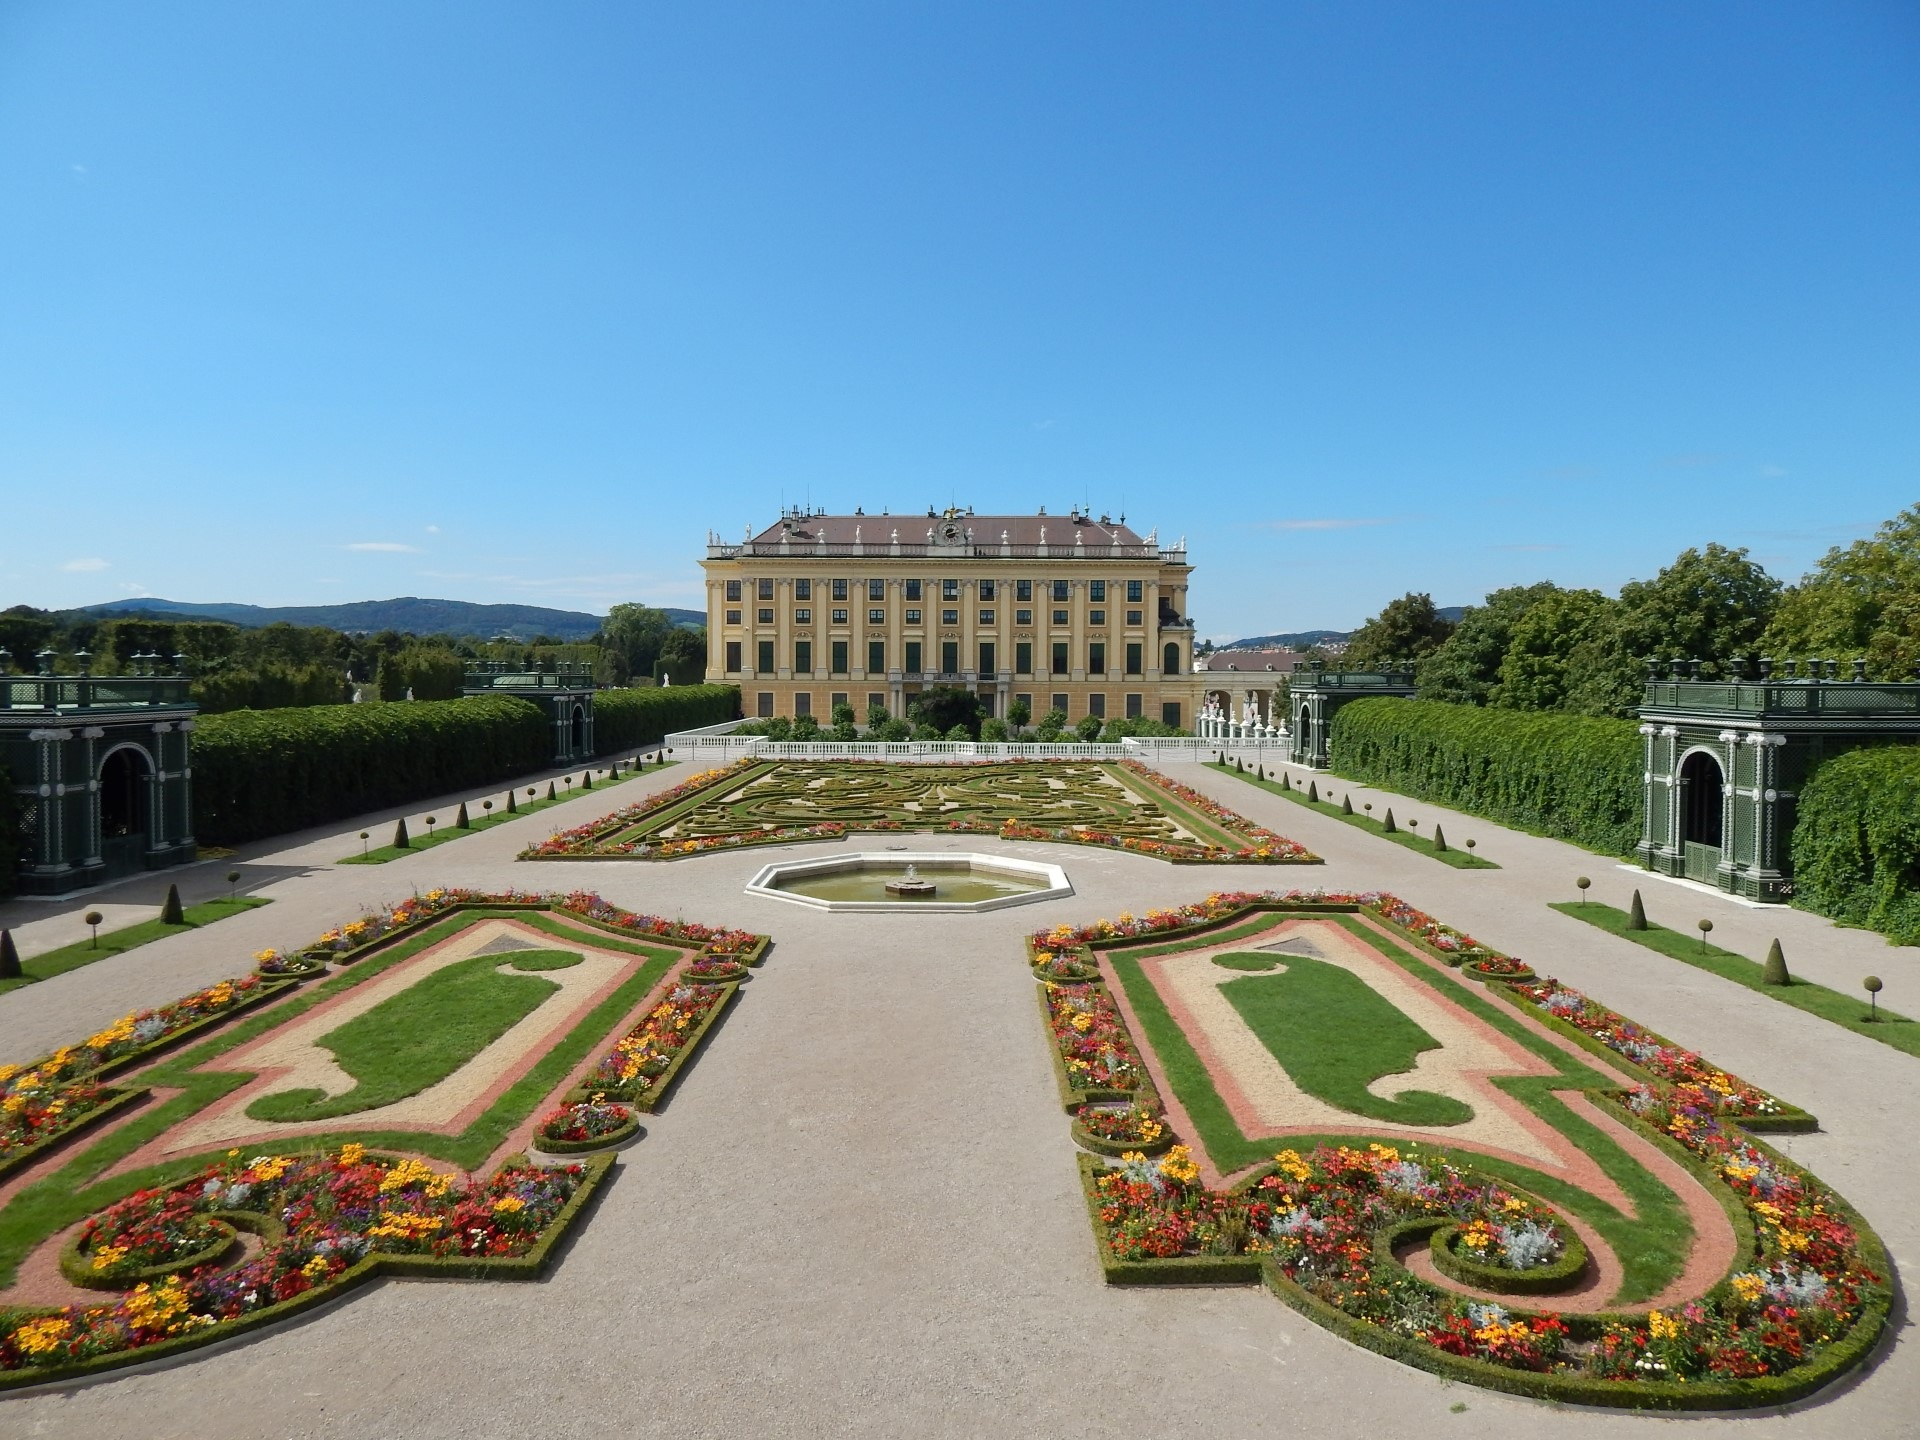 The park at Schönbrunn Palace, Vienna